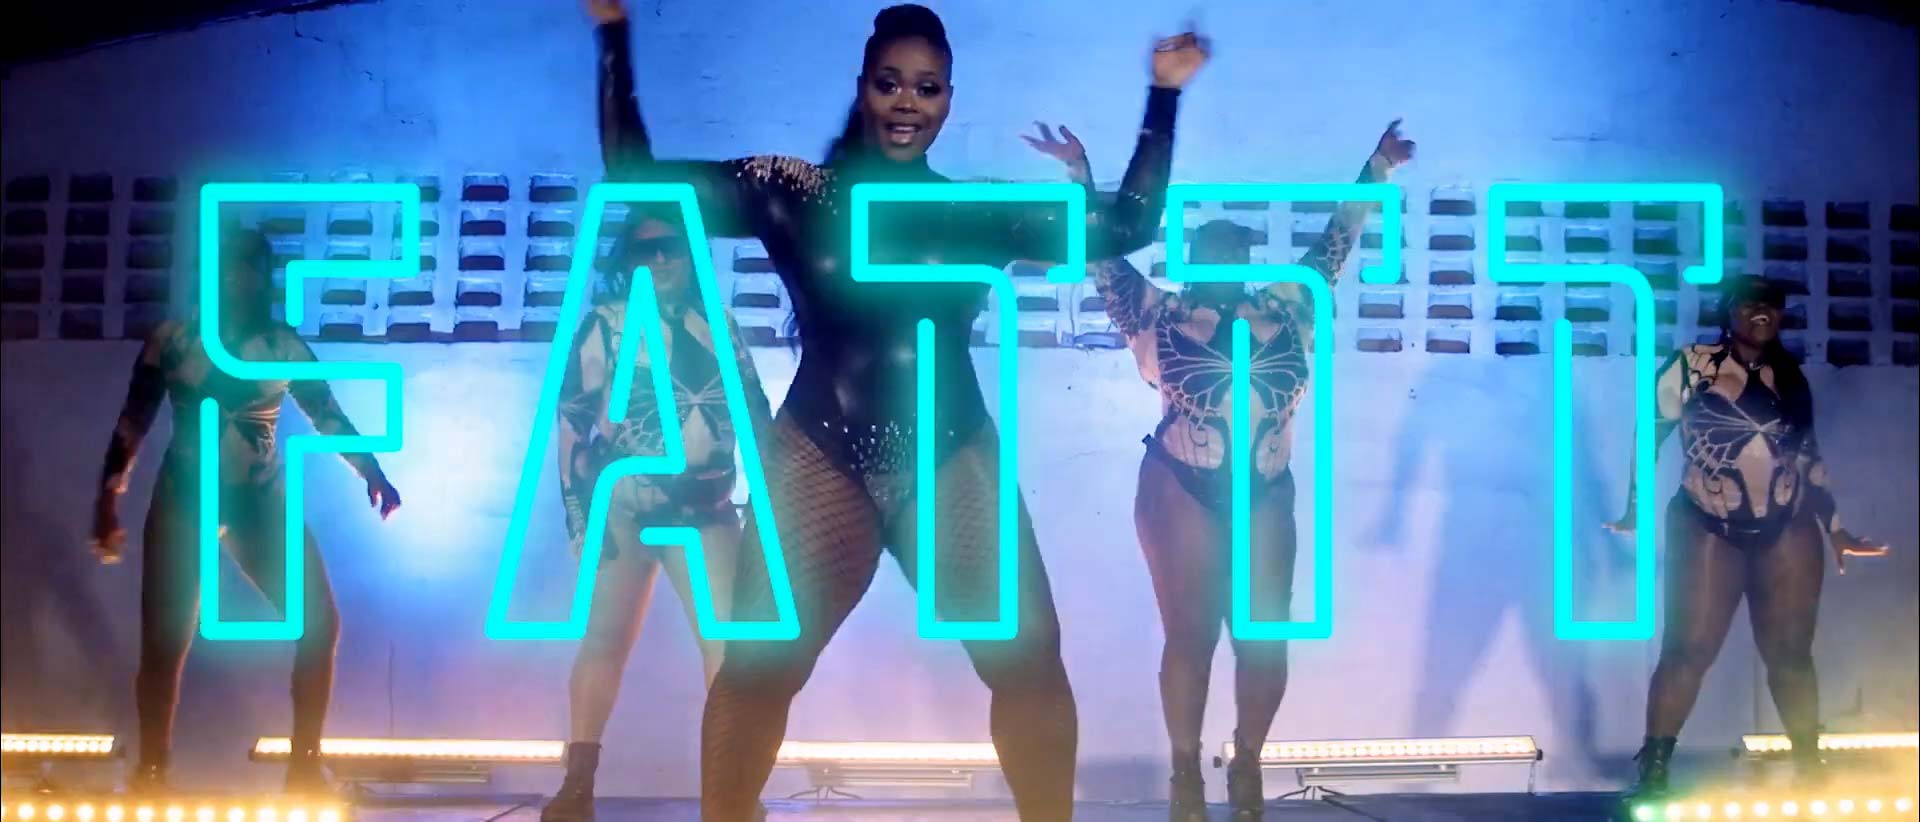 Nadia Batson - ``Fatt`` - Music Video